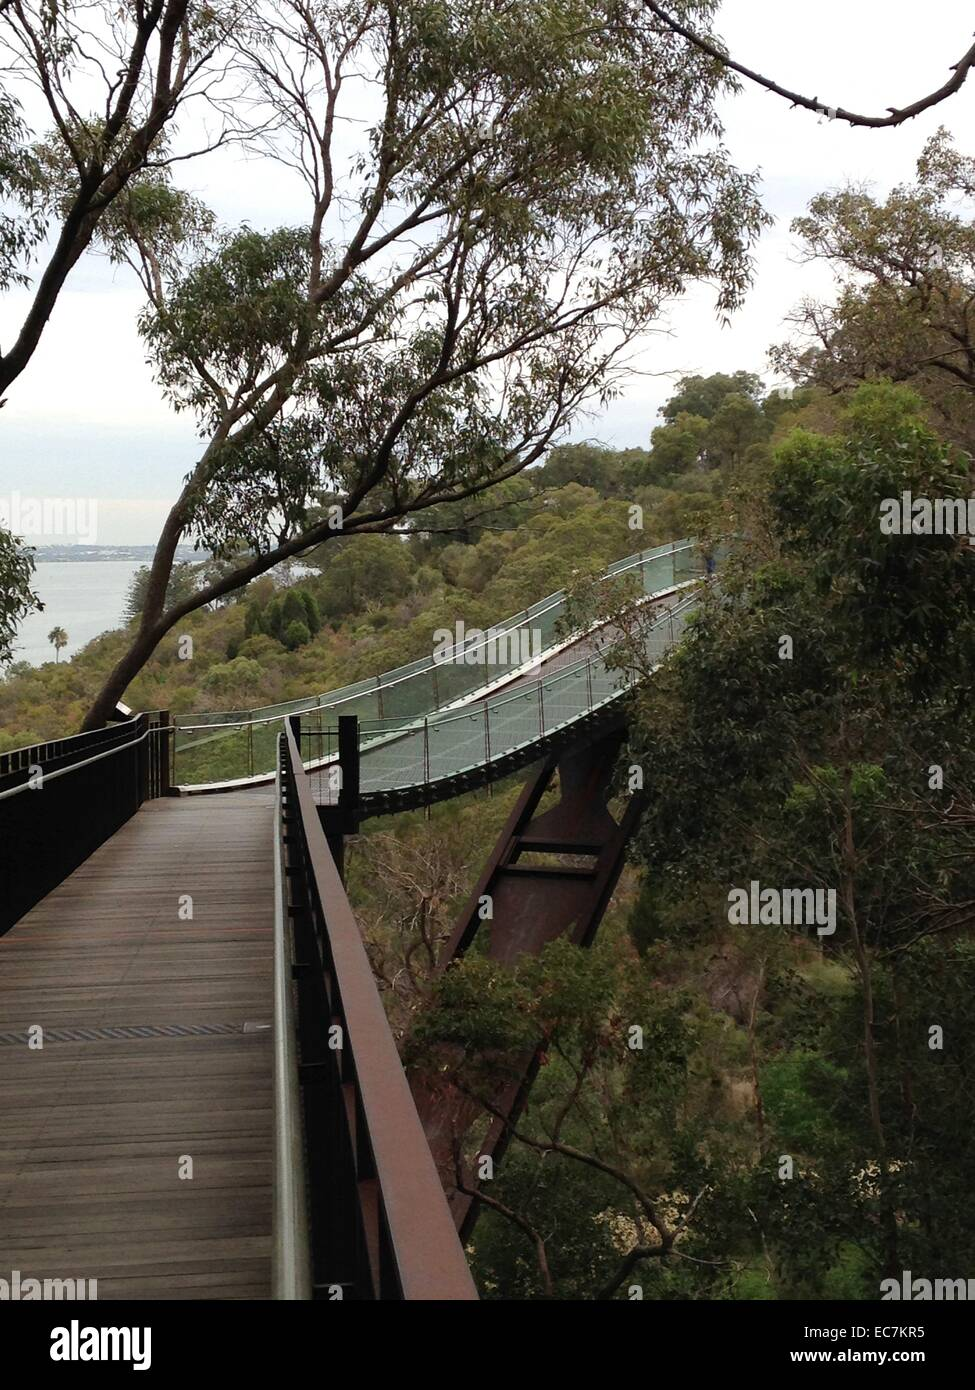 footbridge, in Kings Park, nature park, Perth, Western Australia - Stock Image